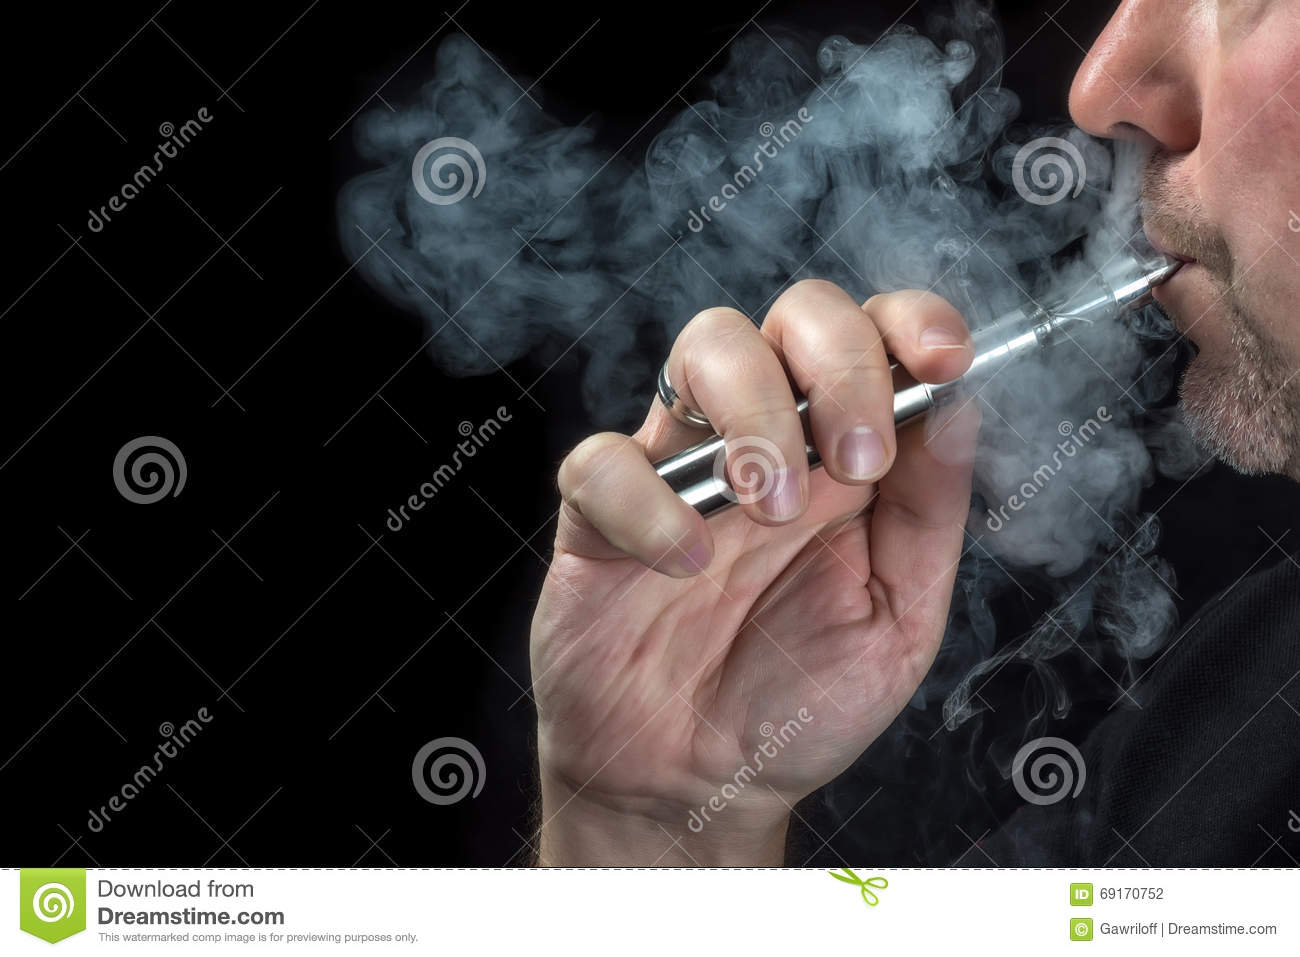 Close-up of a man vaping an electronic cigarette